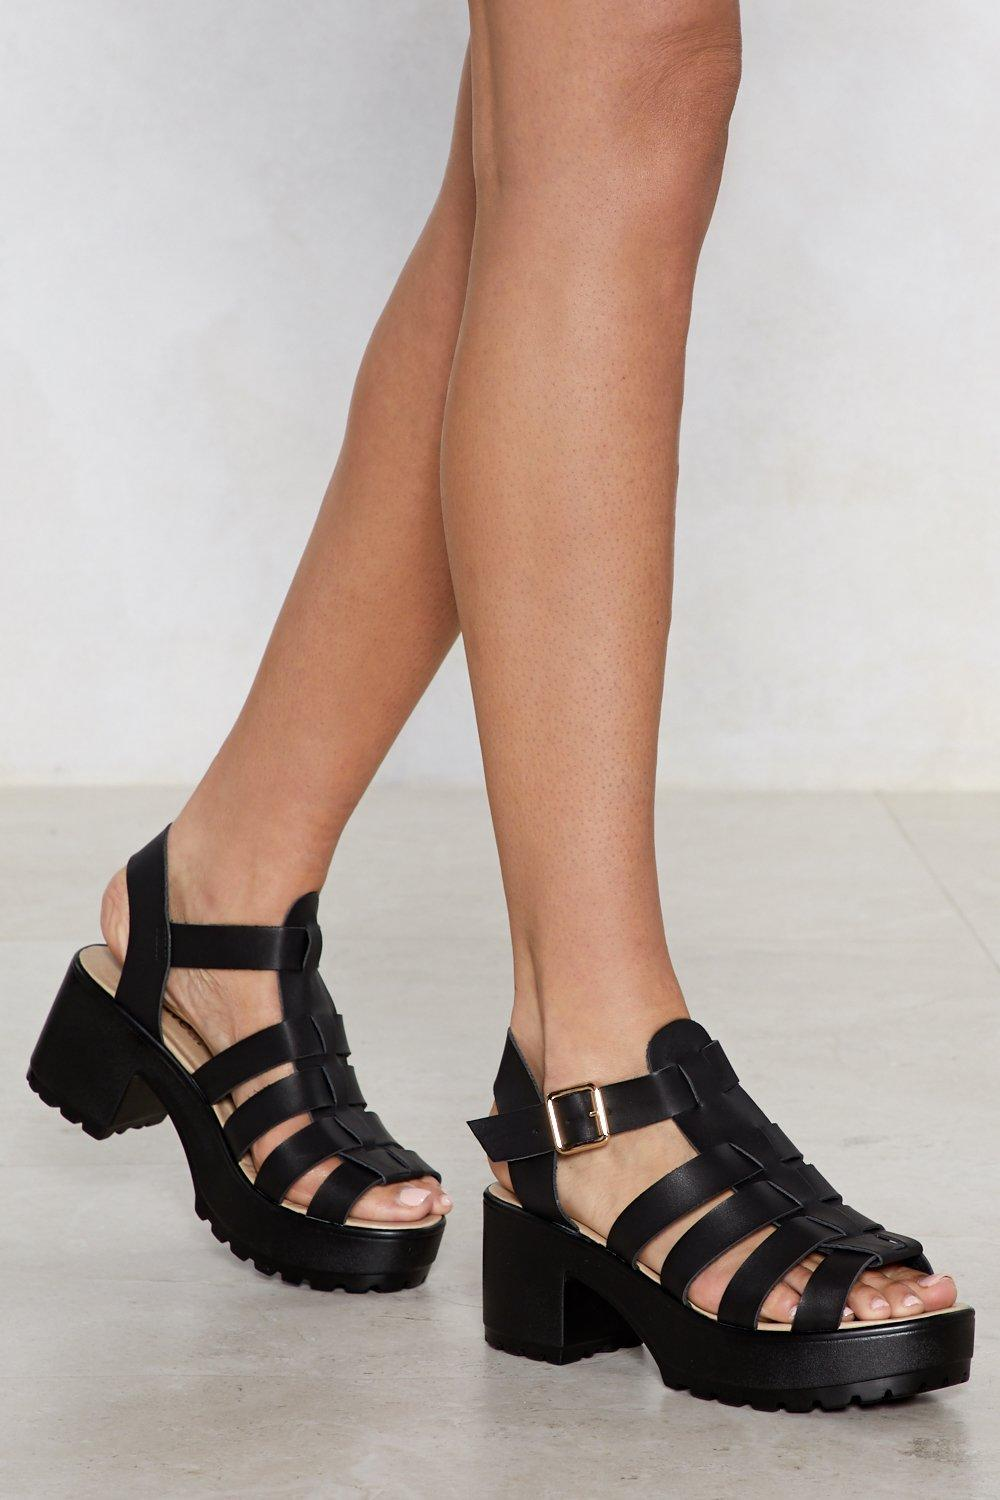 efaa5d5efbc There s No One Gladiator Sandal